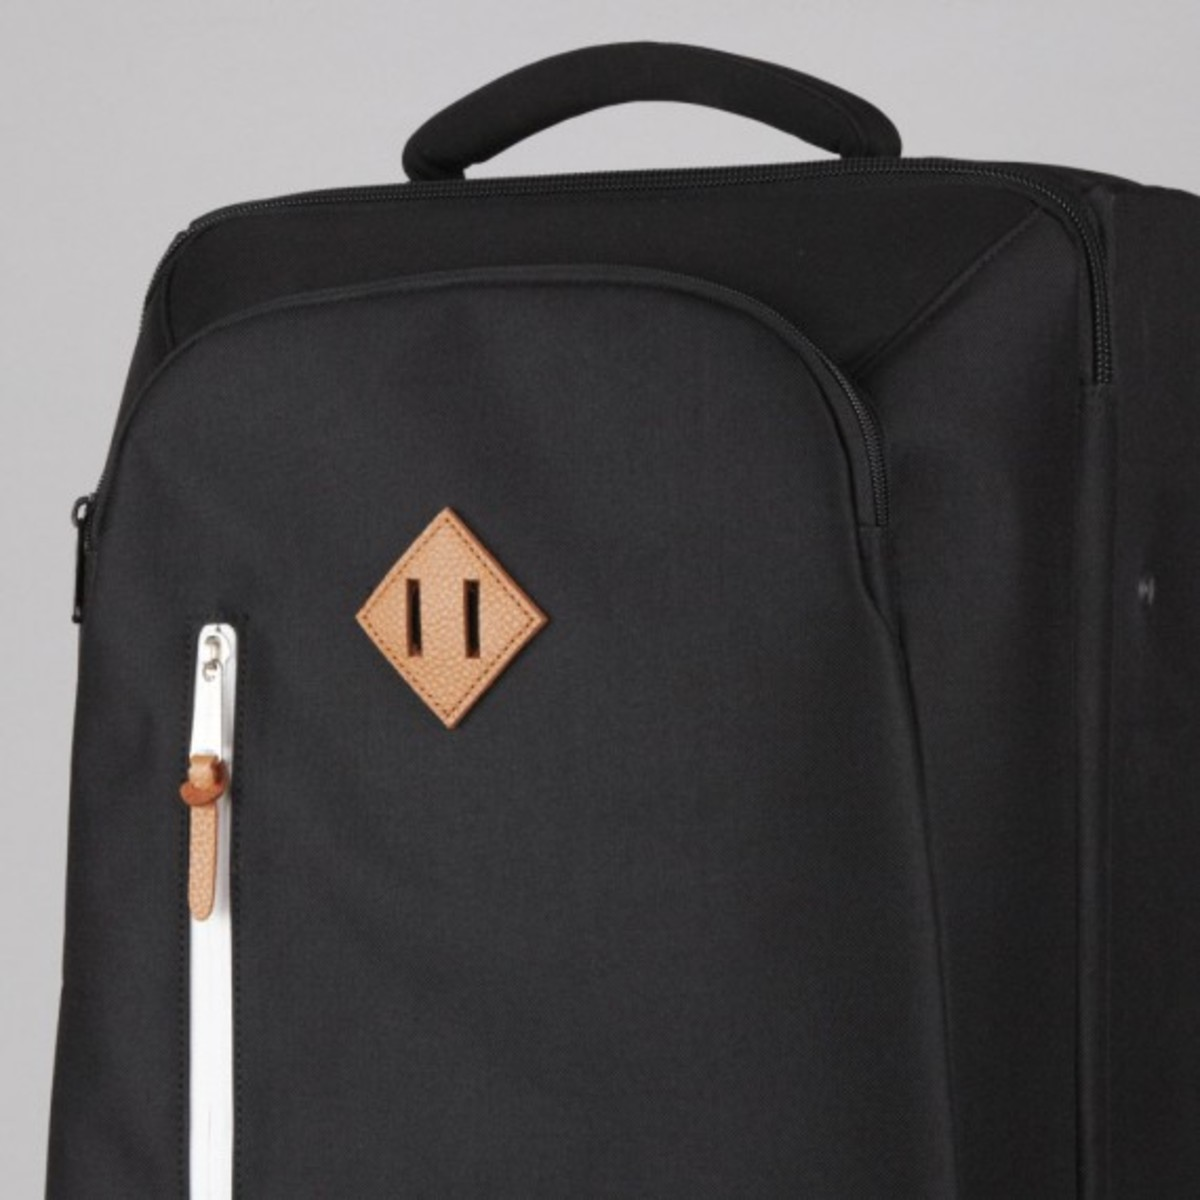 herschel-supply-co-luggage-collection-05